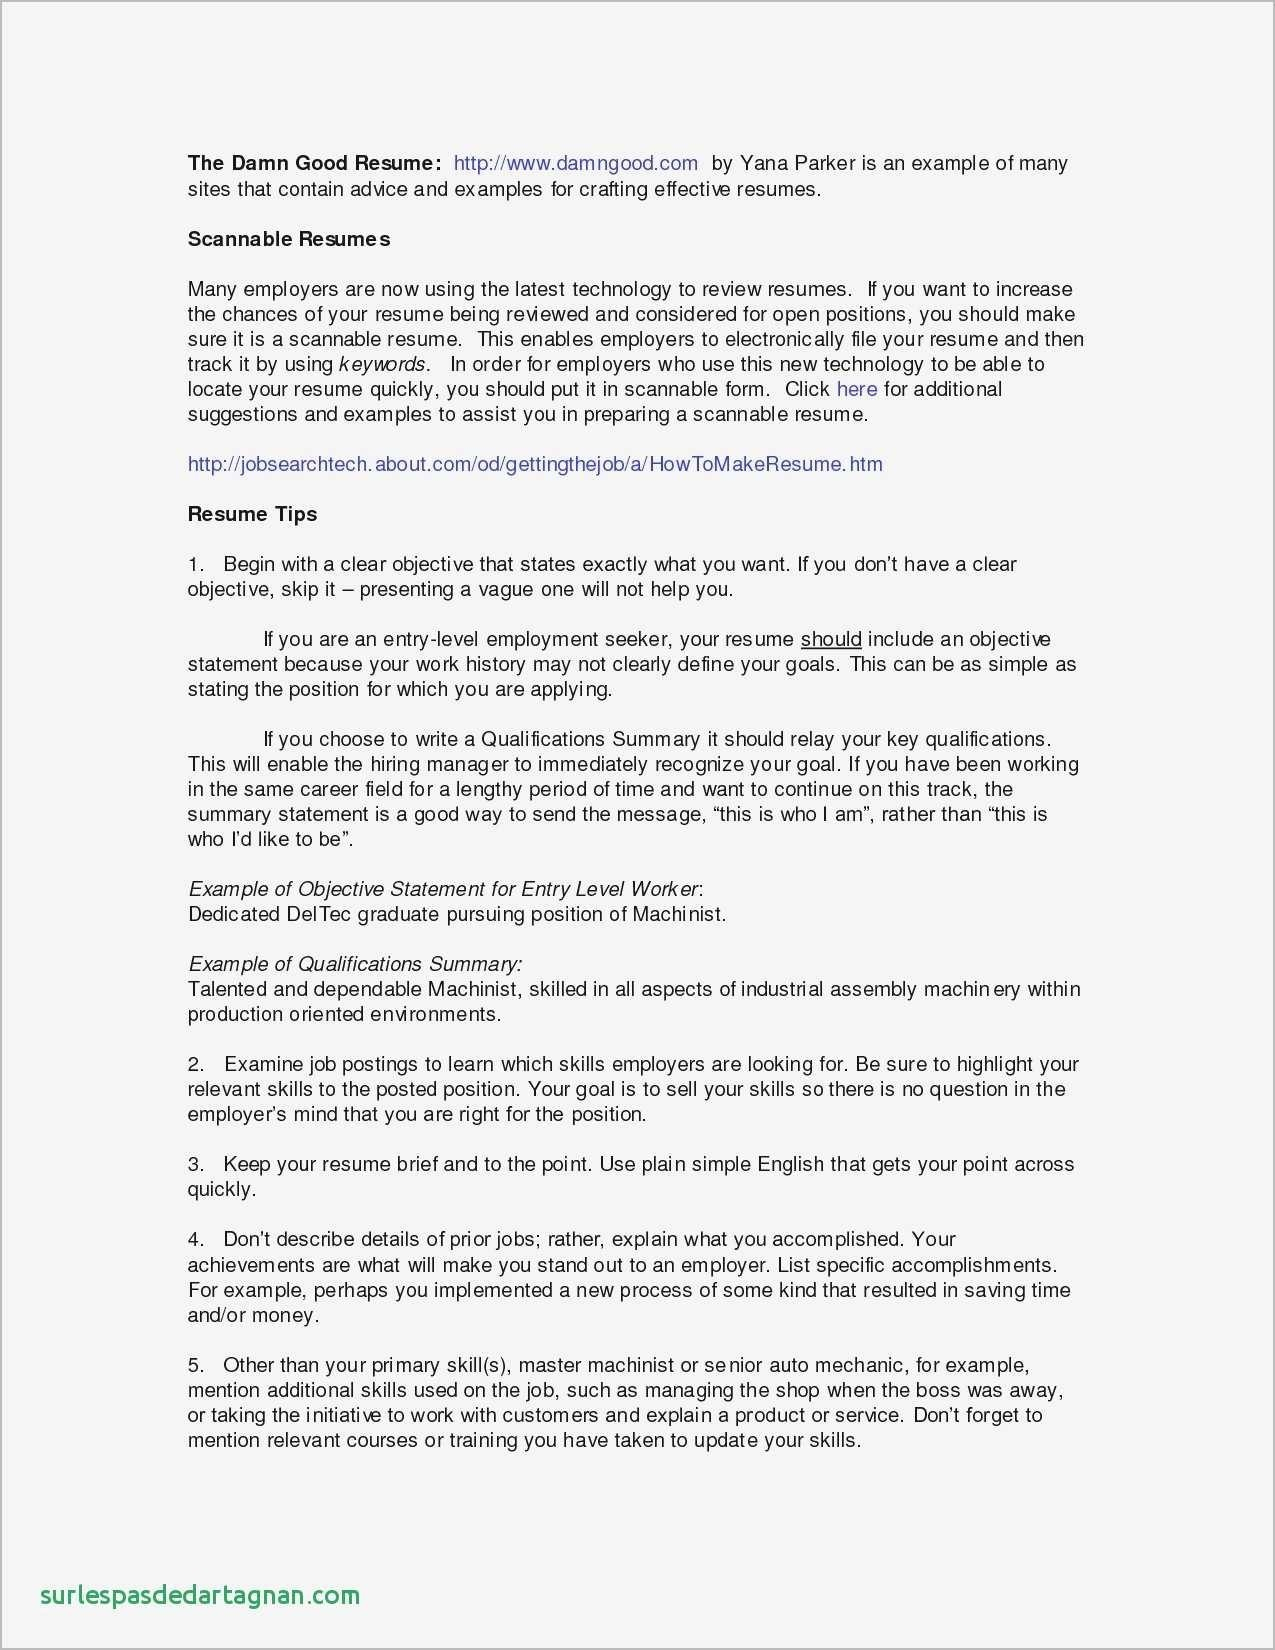 Hire Resume Writer - 21 Resume Writing Services